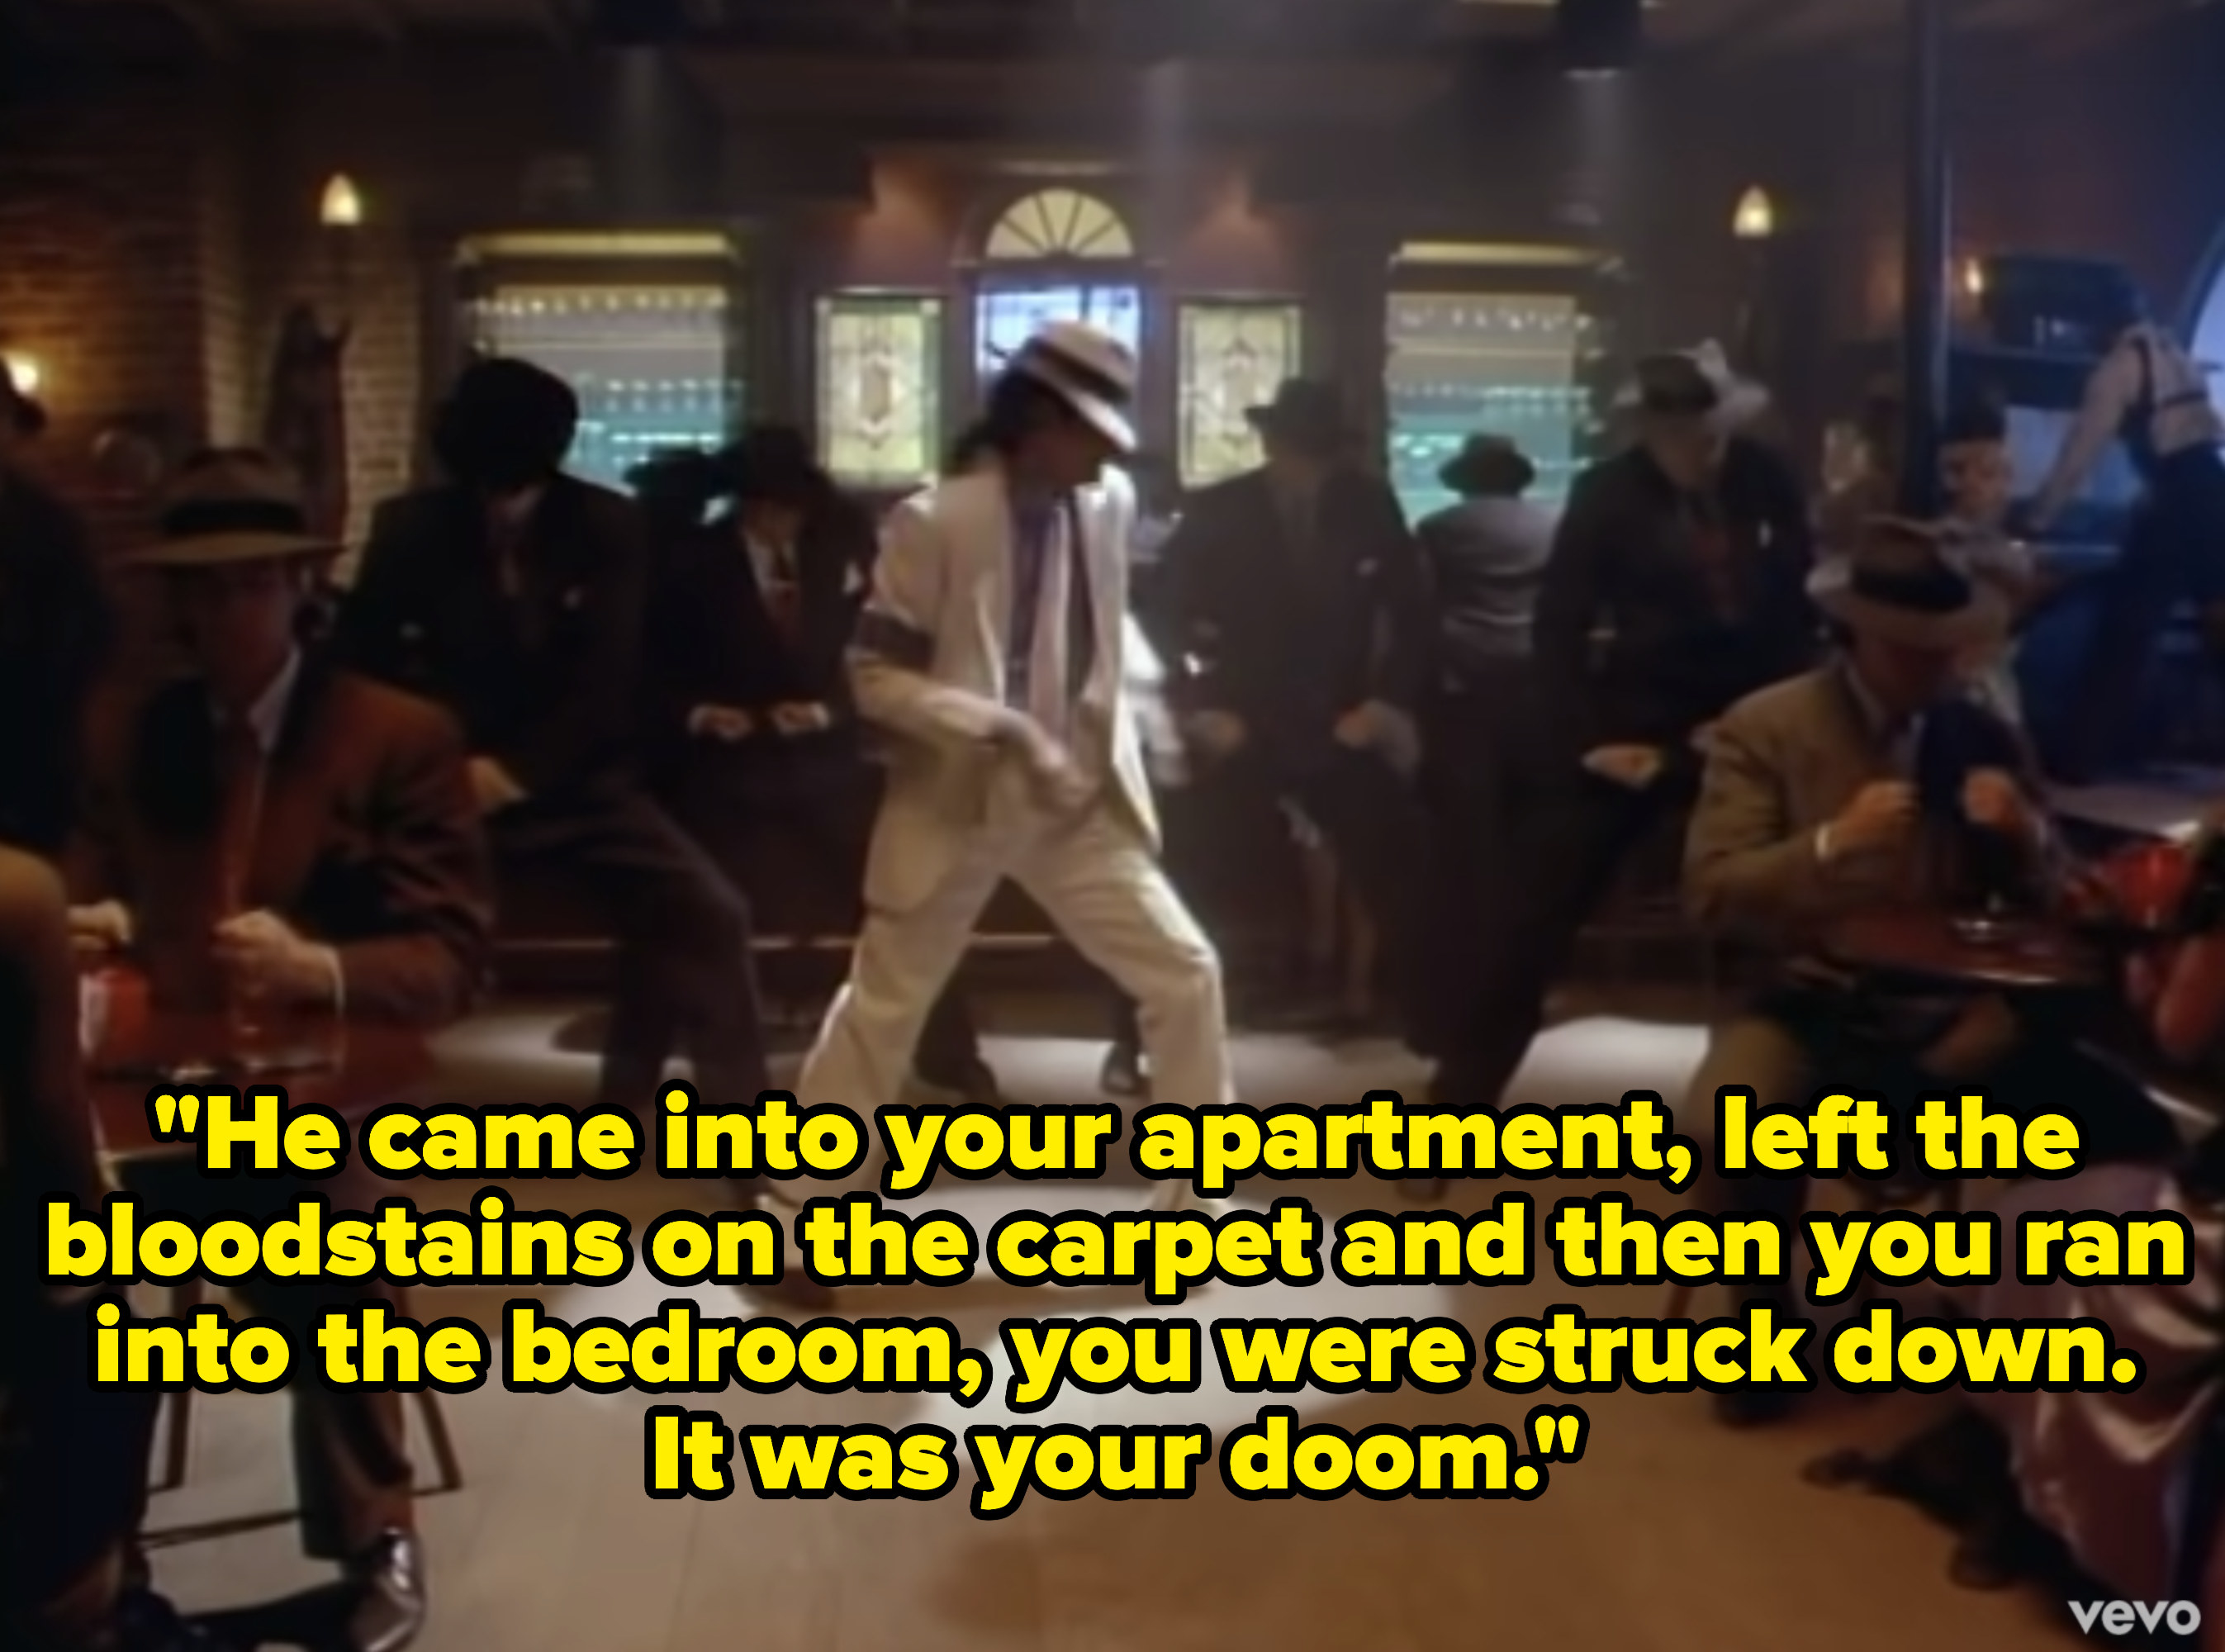 Michael Jackson in a white suit dancing in the middle of a saloon.